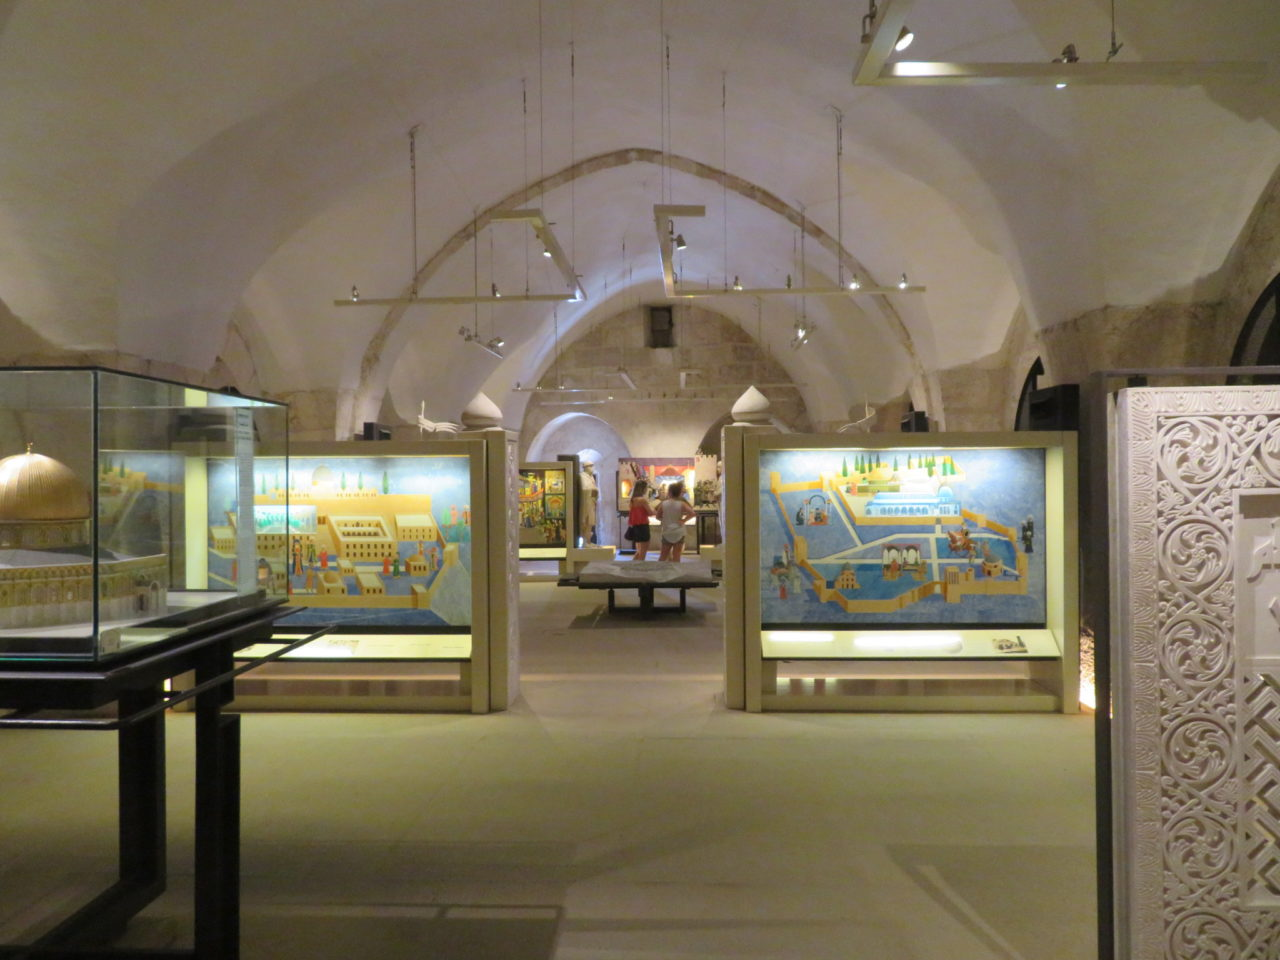 The joys of walking Jerusalem - Museum of the history of Jerusalem at the Tower of David